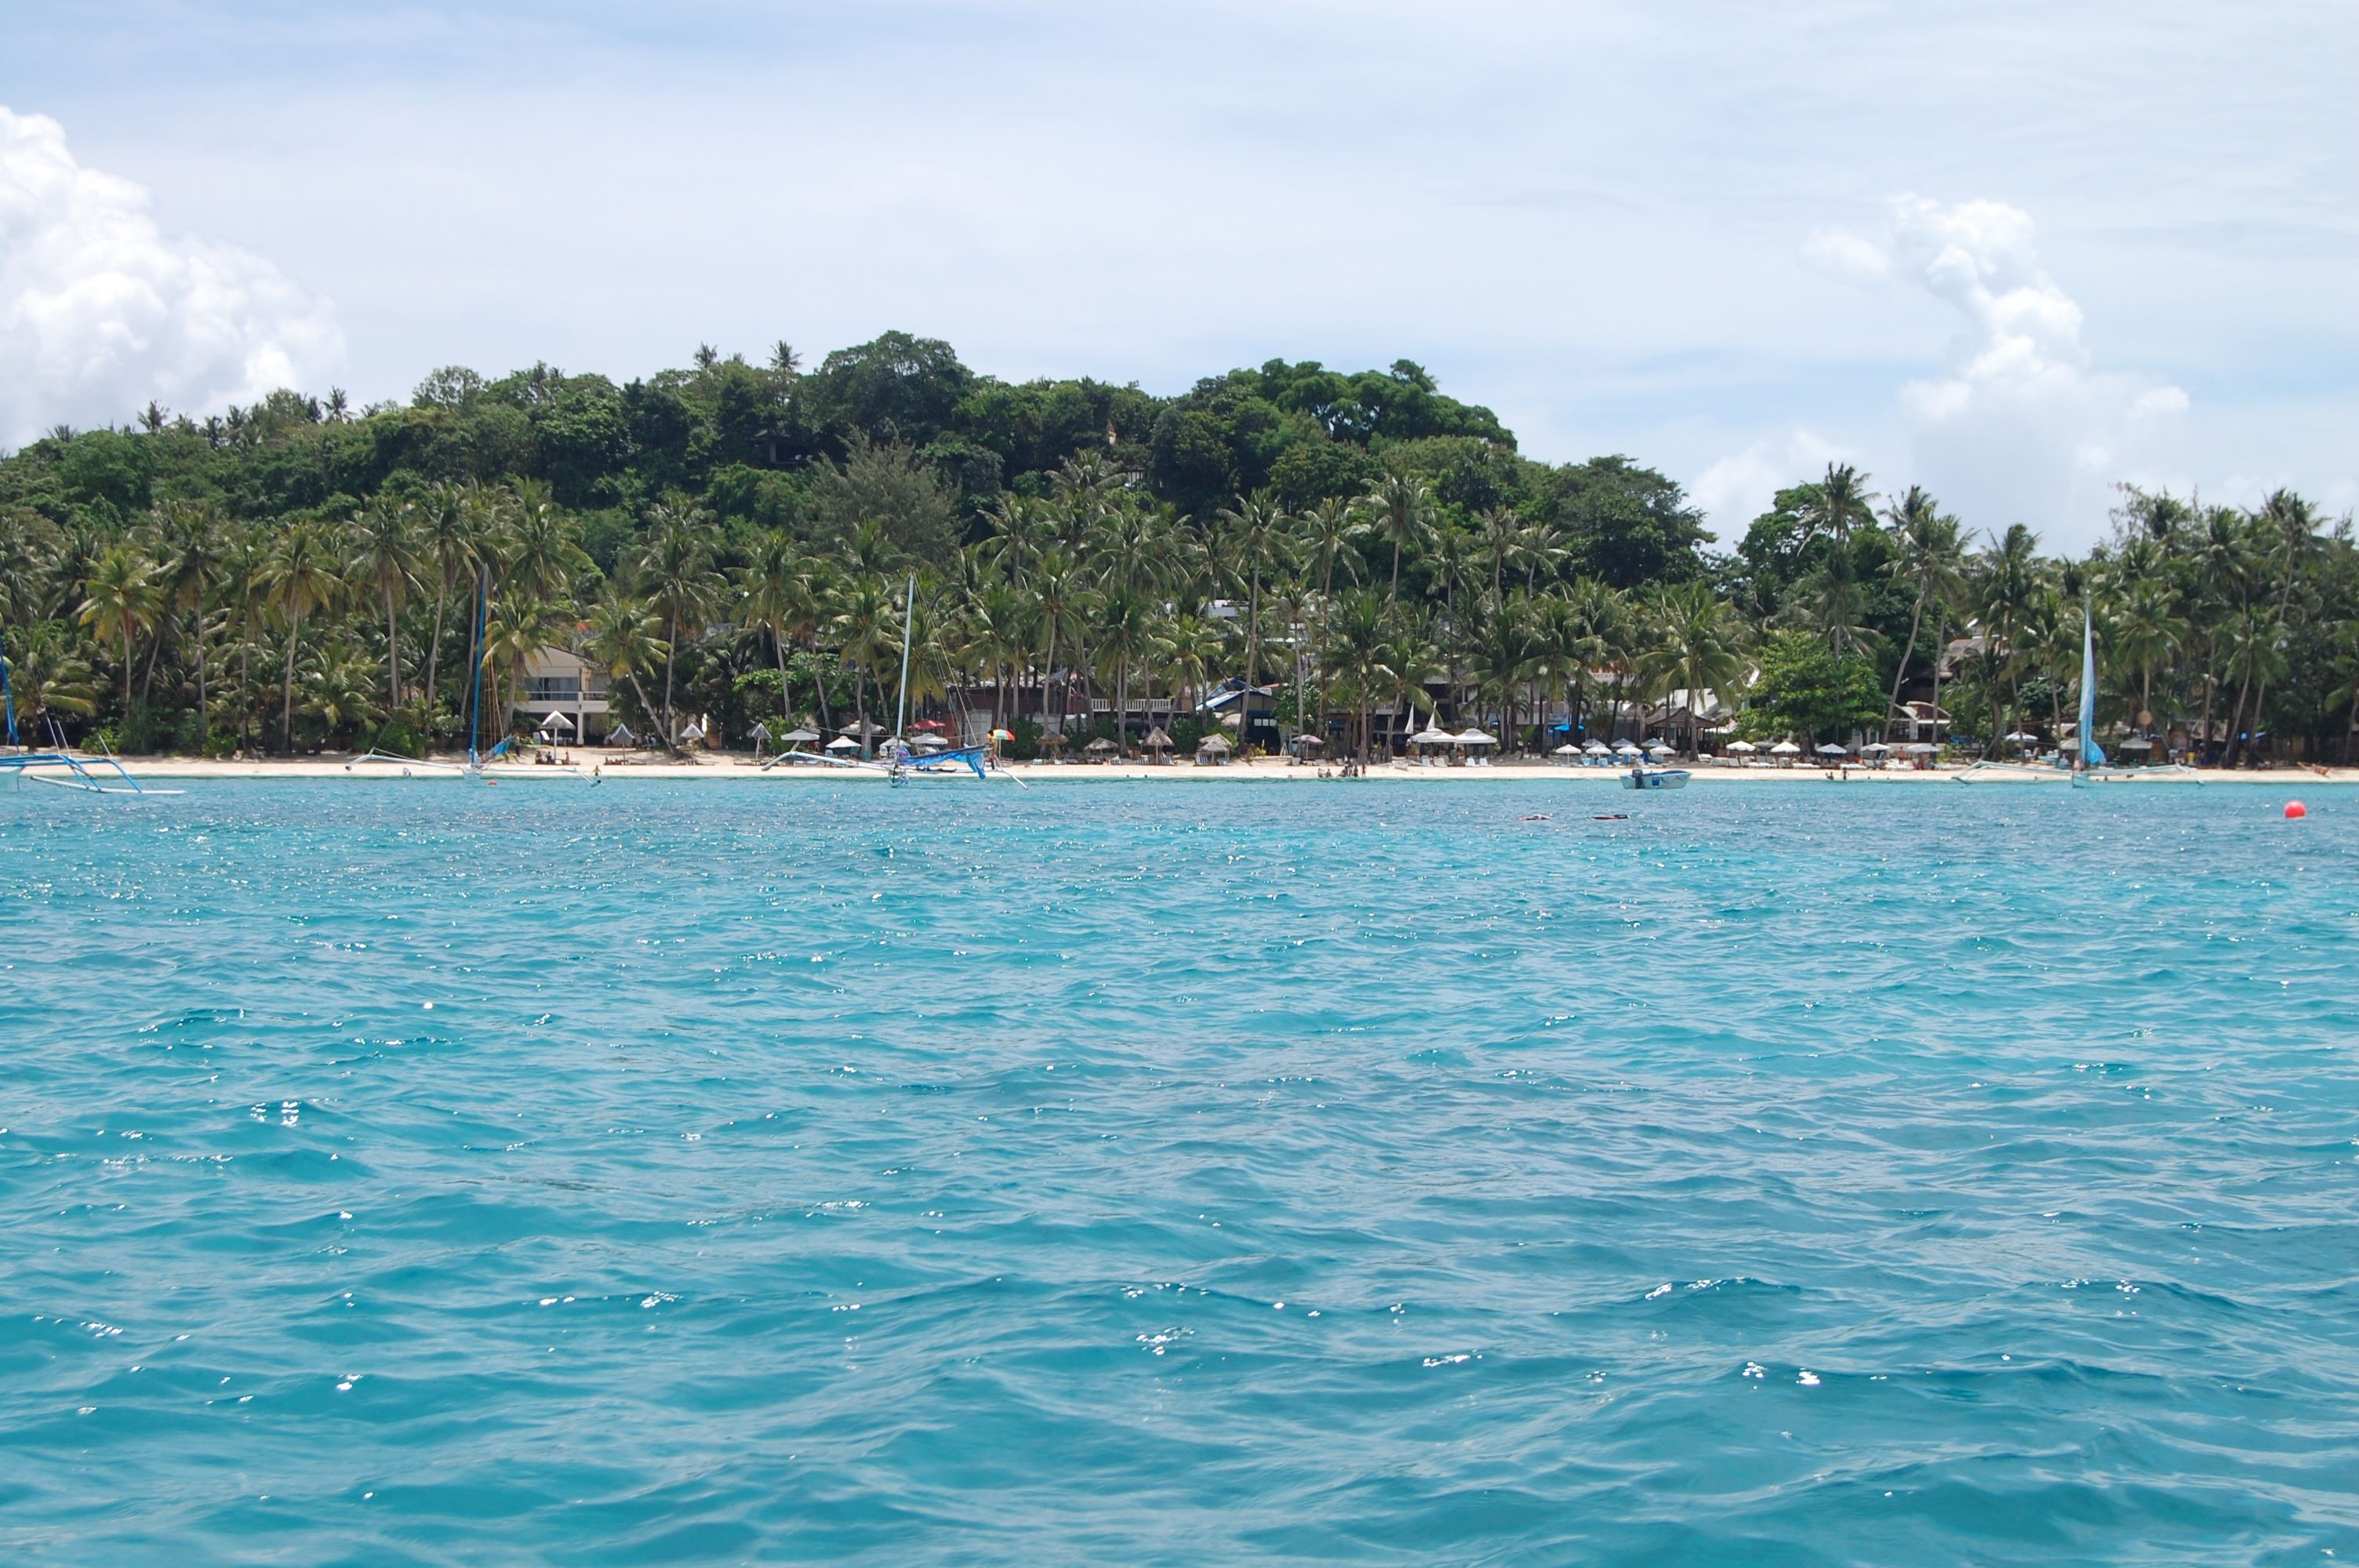 Pin by ELIZABETH TABANAO on Philippine beaches Here we